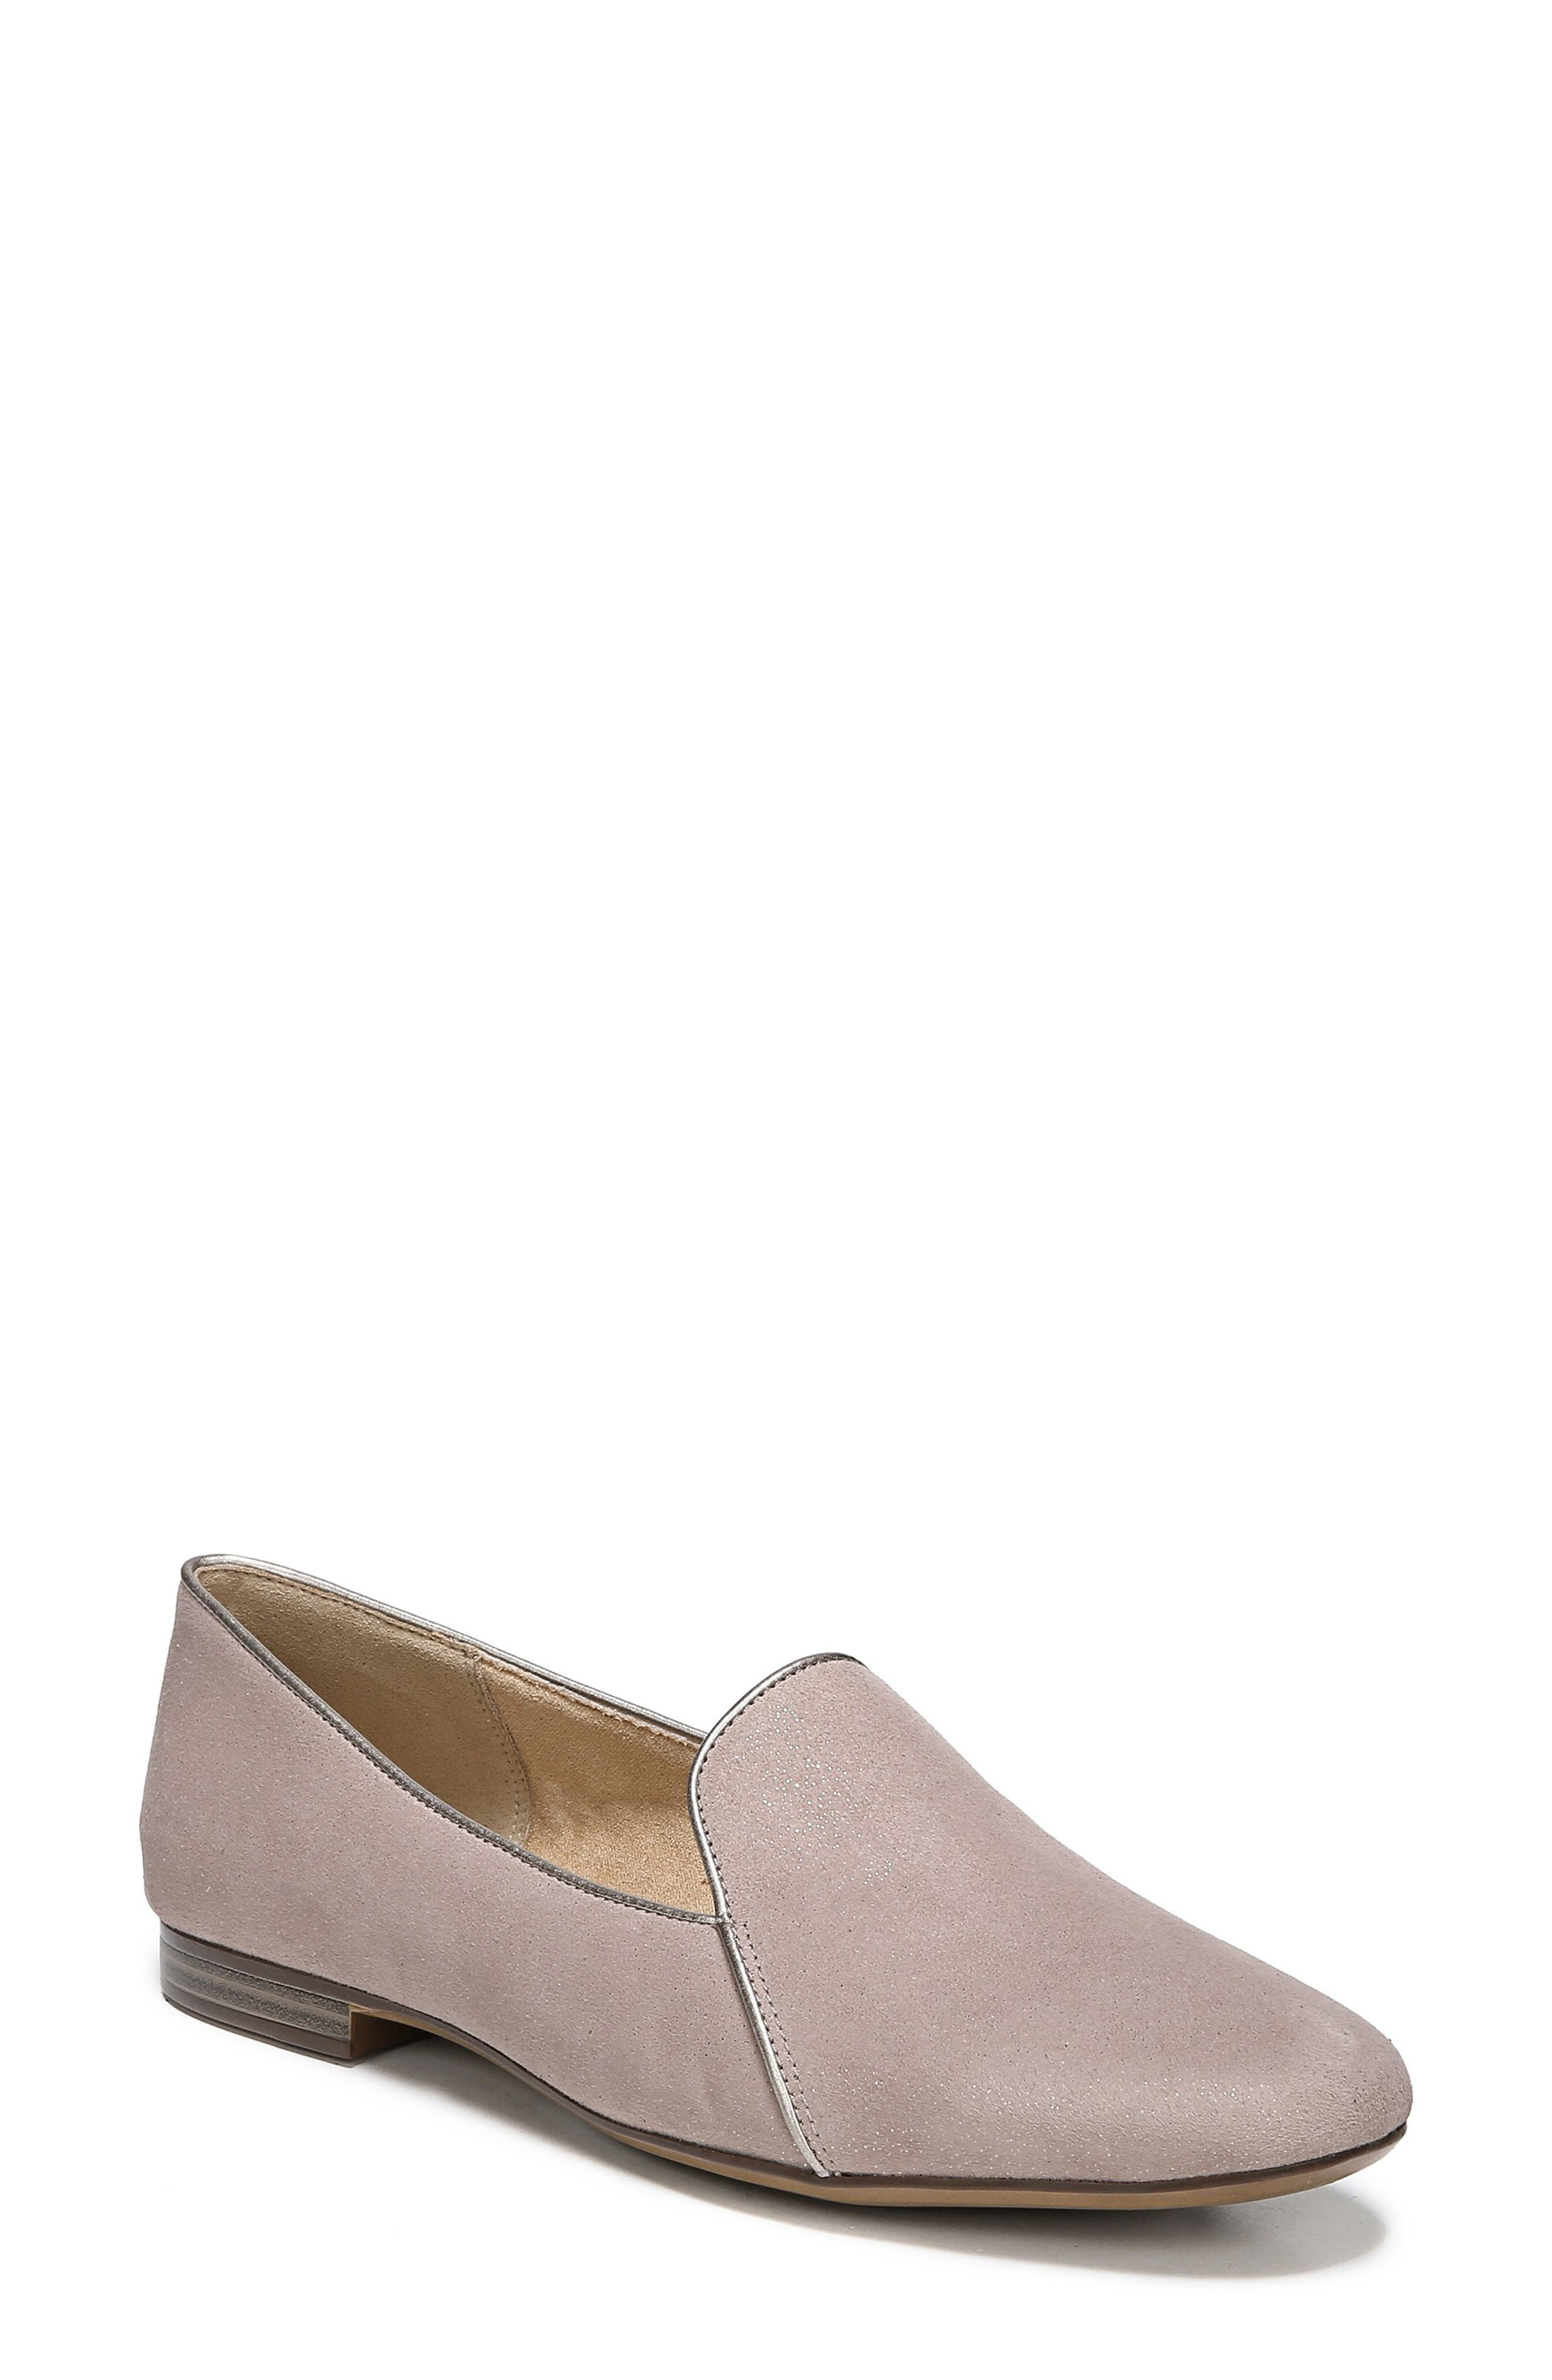 Emiline 2 Loafer,                             Main thumbnail 1, color,                             TAUPE GLITTER DUST SUEDE